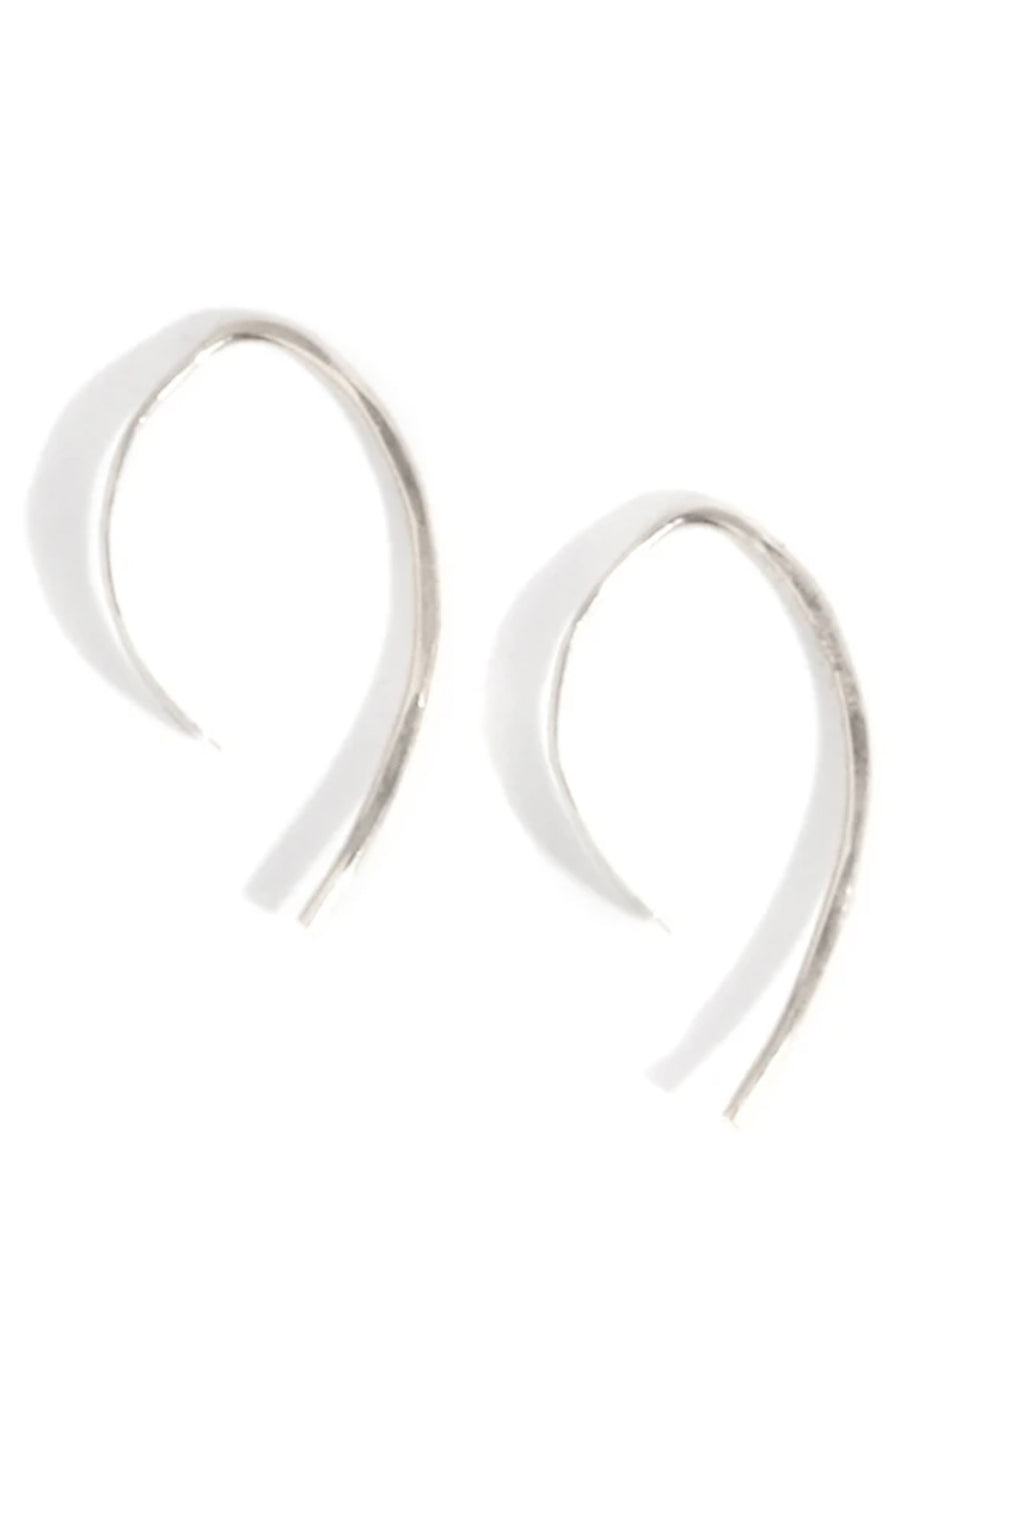 "Melissa Joy Manning 1.5"" Sterling Silver Wishbone Hoop Earrings"